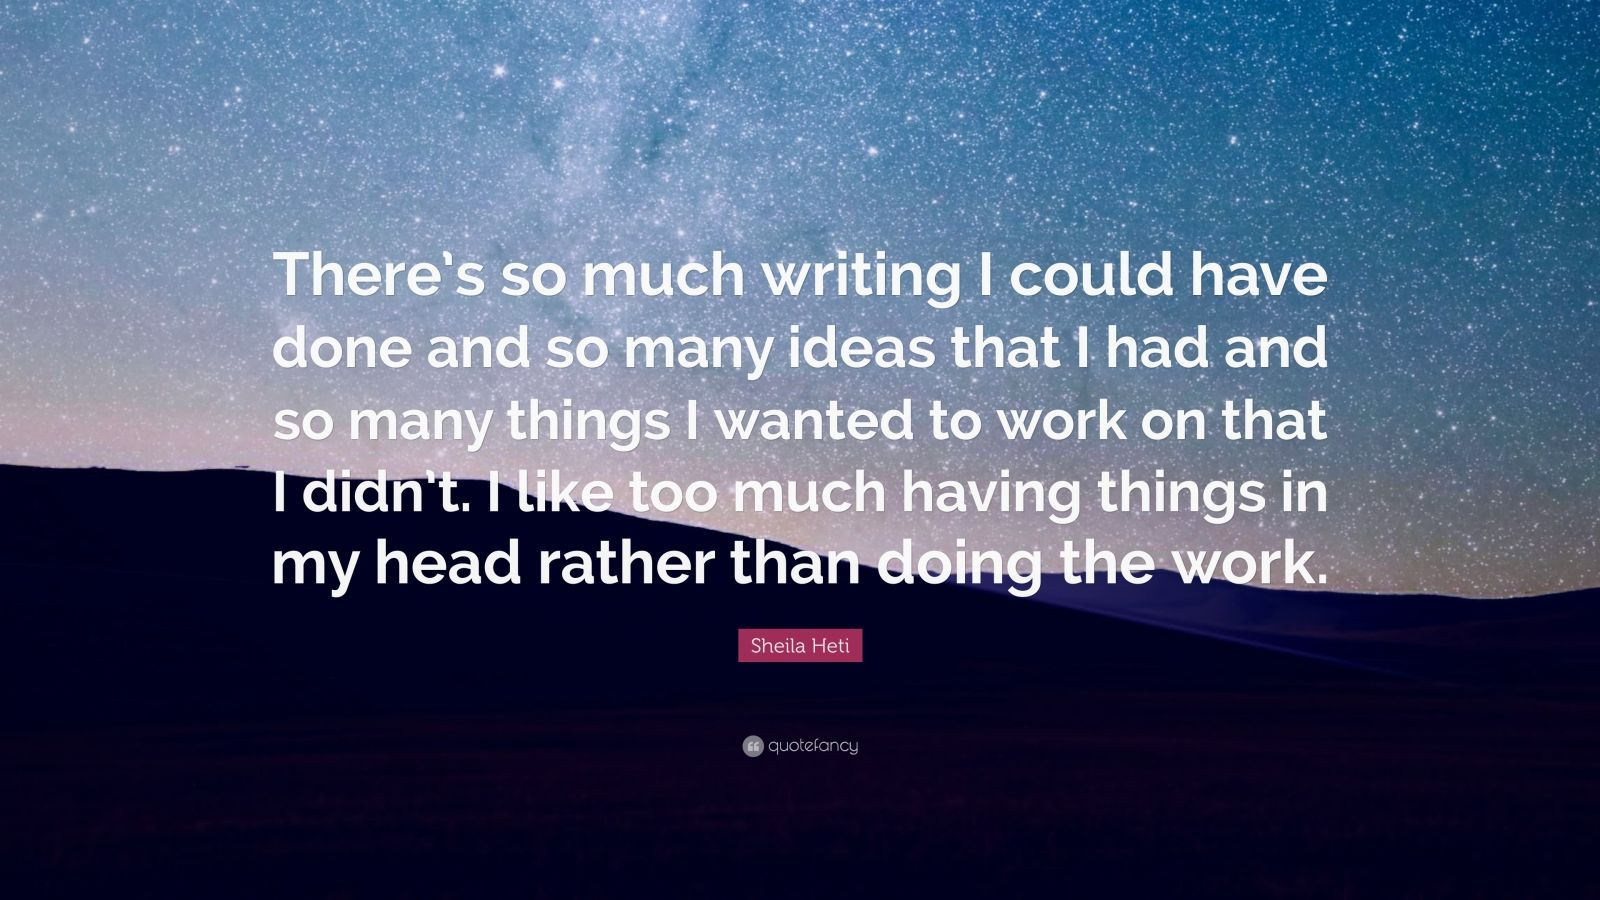 "Sheila Heti Quote: ""There's so much writing I could have done and so many ideas that I had and so many things I wanted to work on that I didn't. I like too much having things in my head rather than doing the work."""